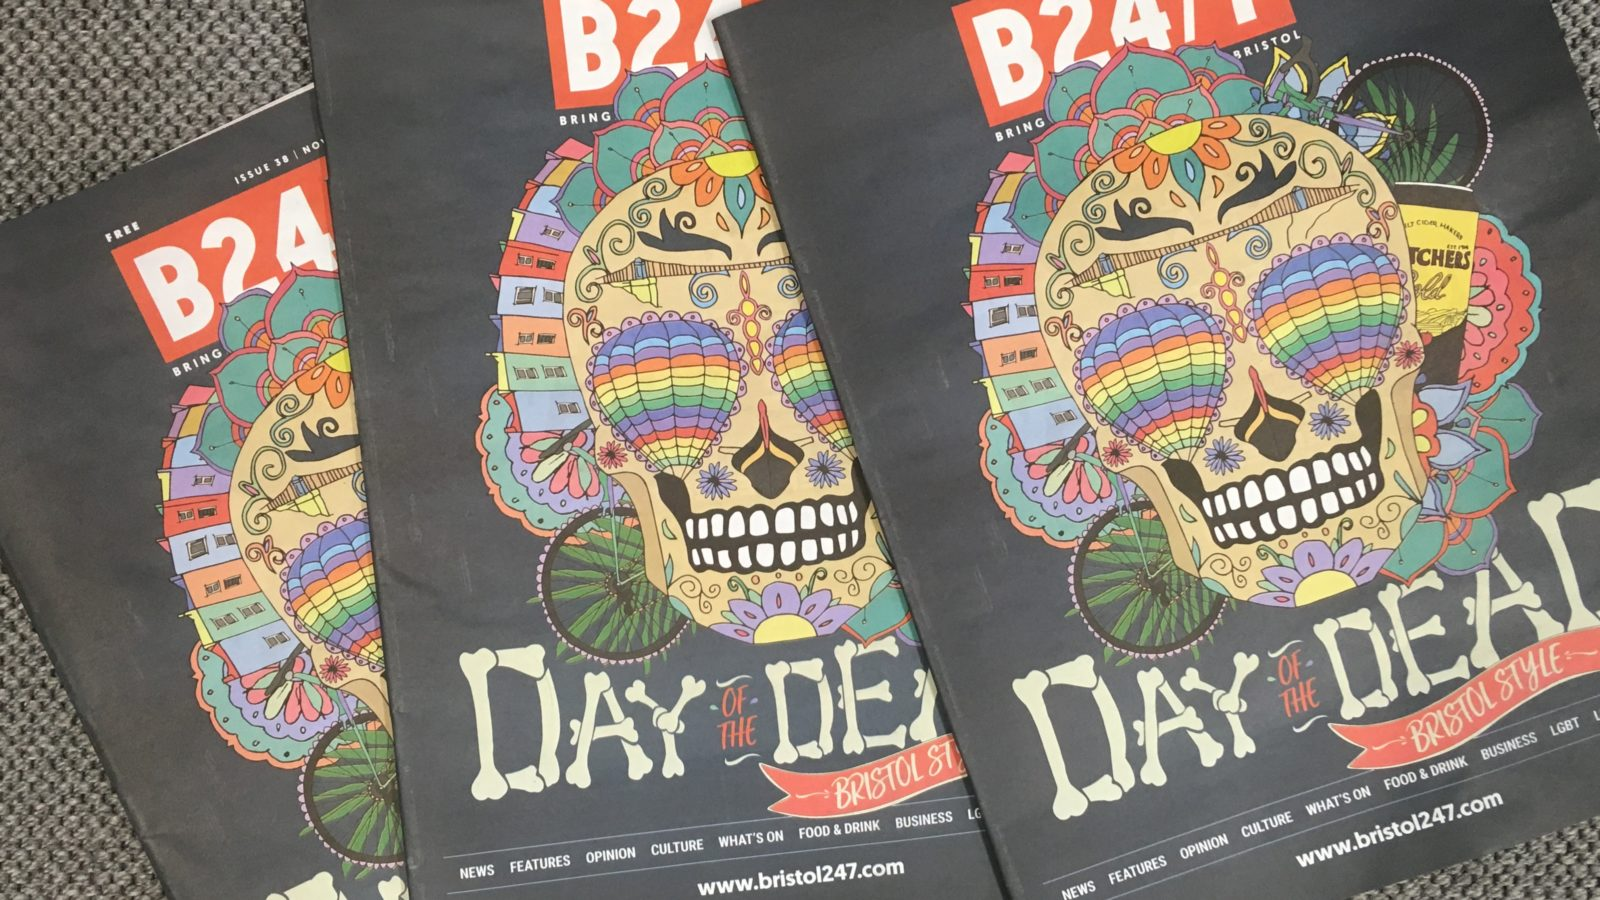 Day-of-the-Dead-Bristol-247-magazine-front-cover-1600x900.jpg